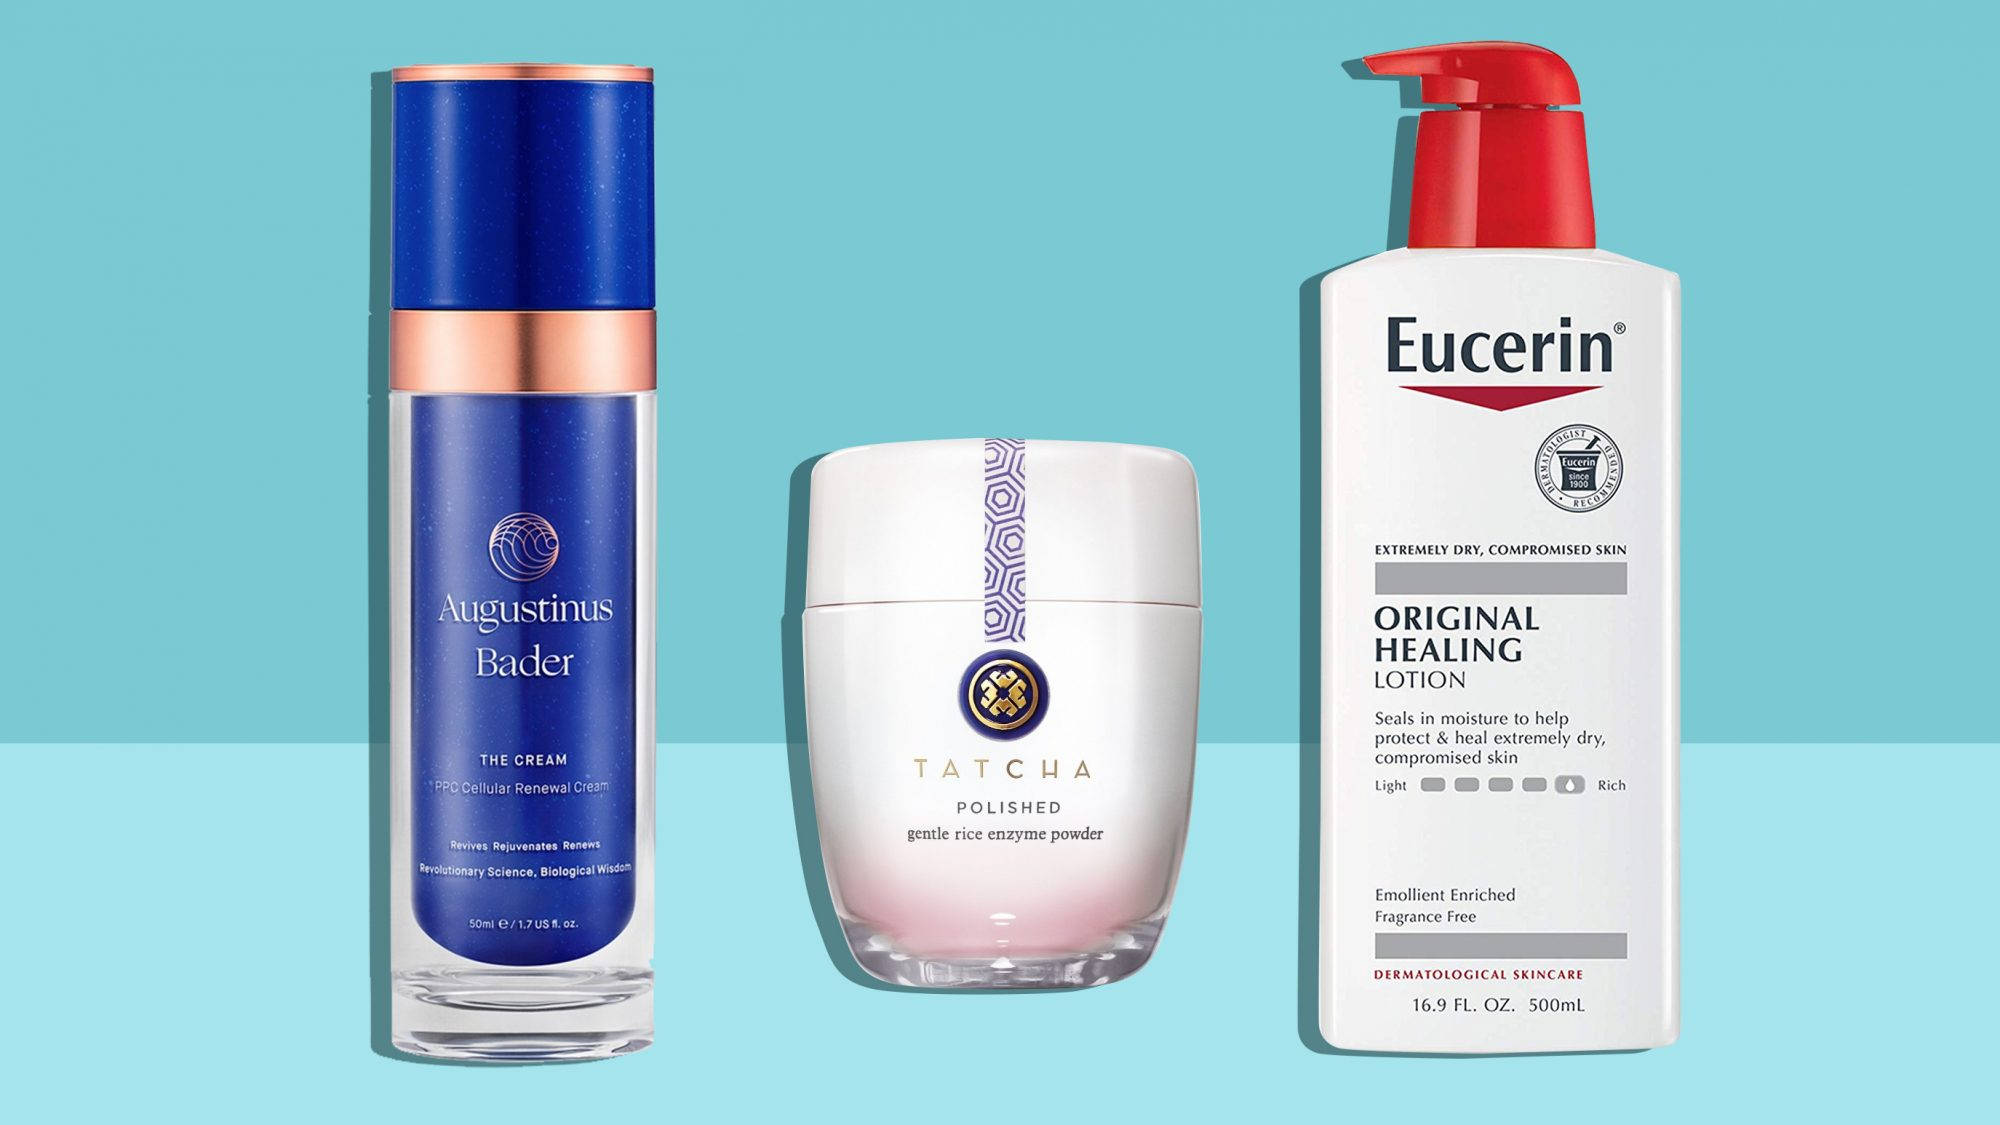 3 products as part of a skincare routine